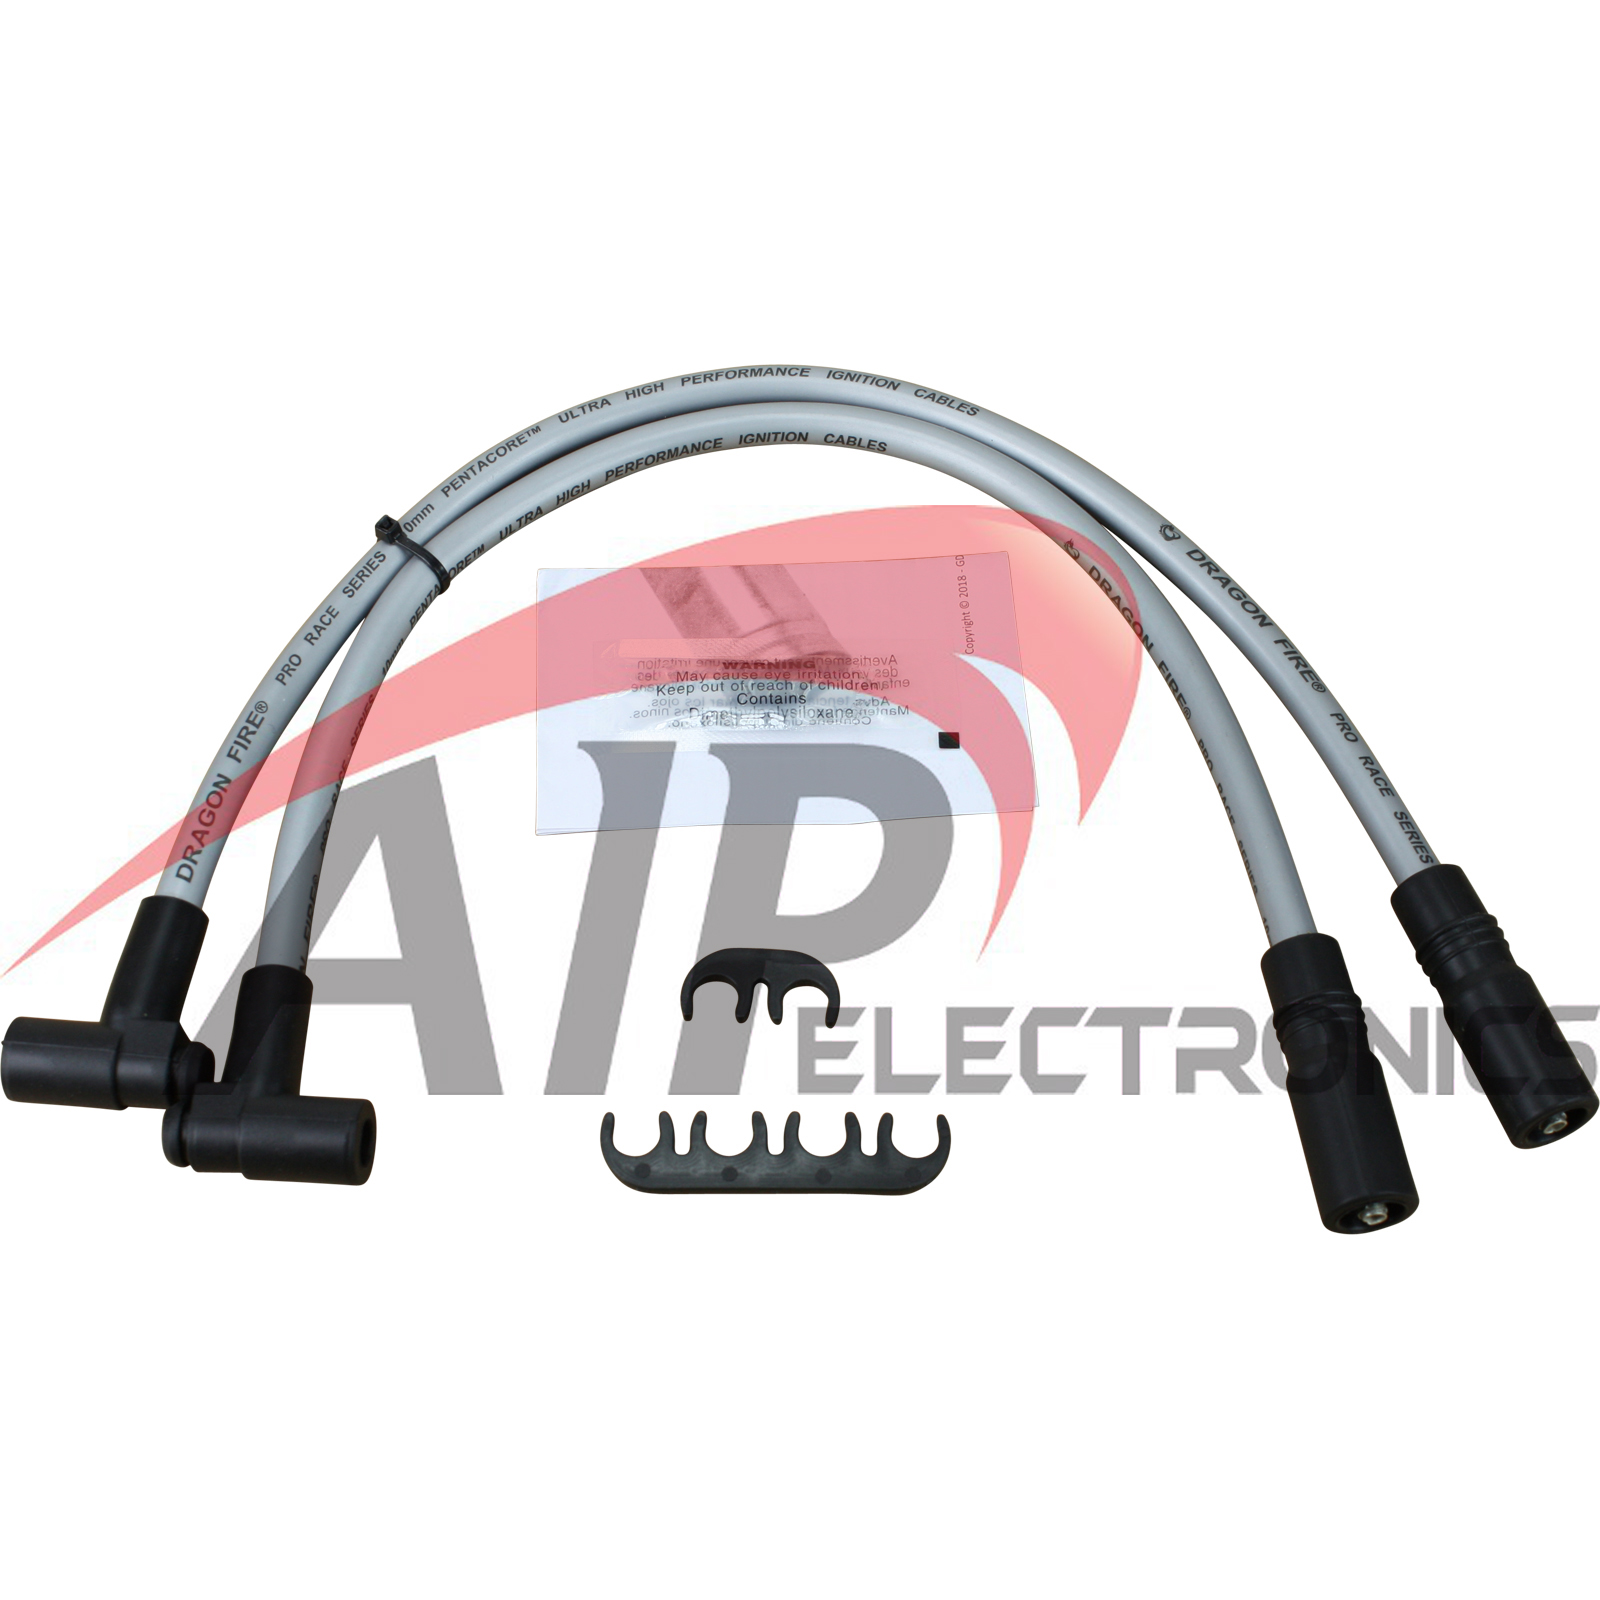 Brand New DragonFire 10.2mm Spark Plug Wires For 1993-1997 Toyota Geo Celica Corolla Prizm OEM Fit PWJ140